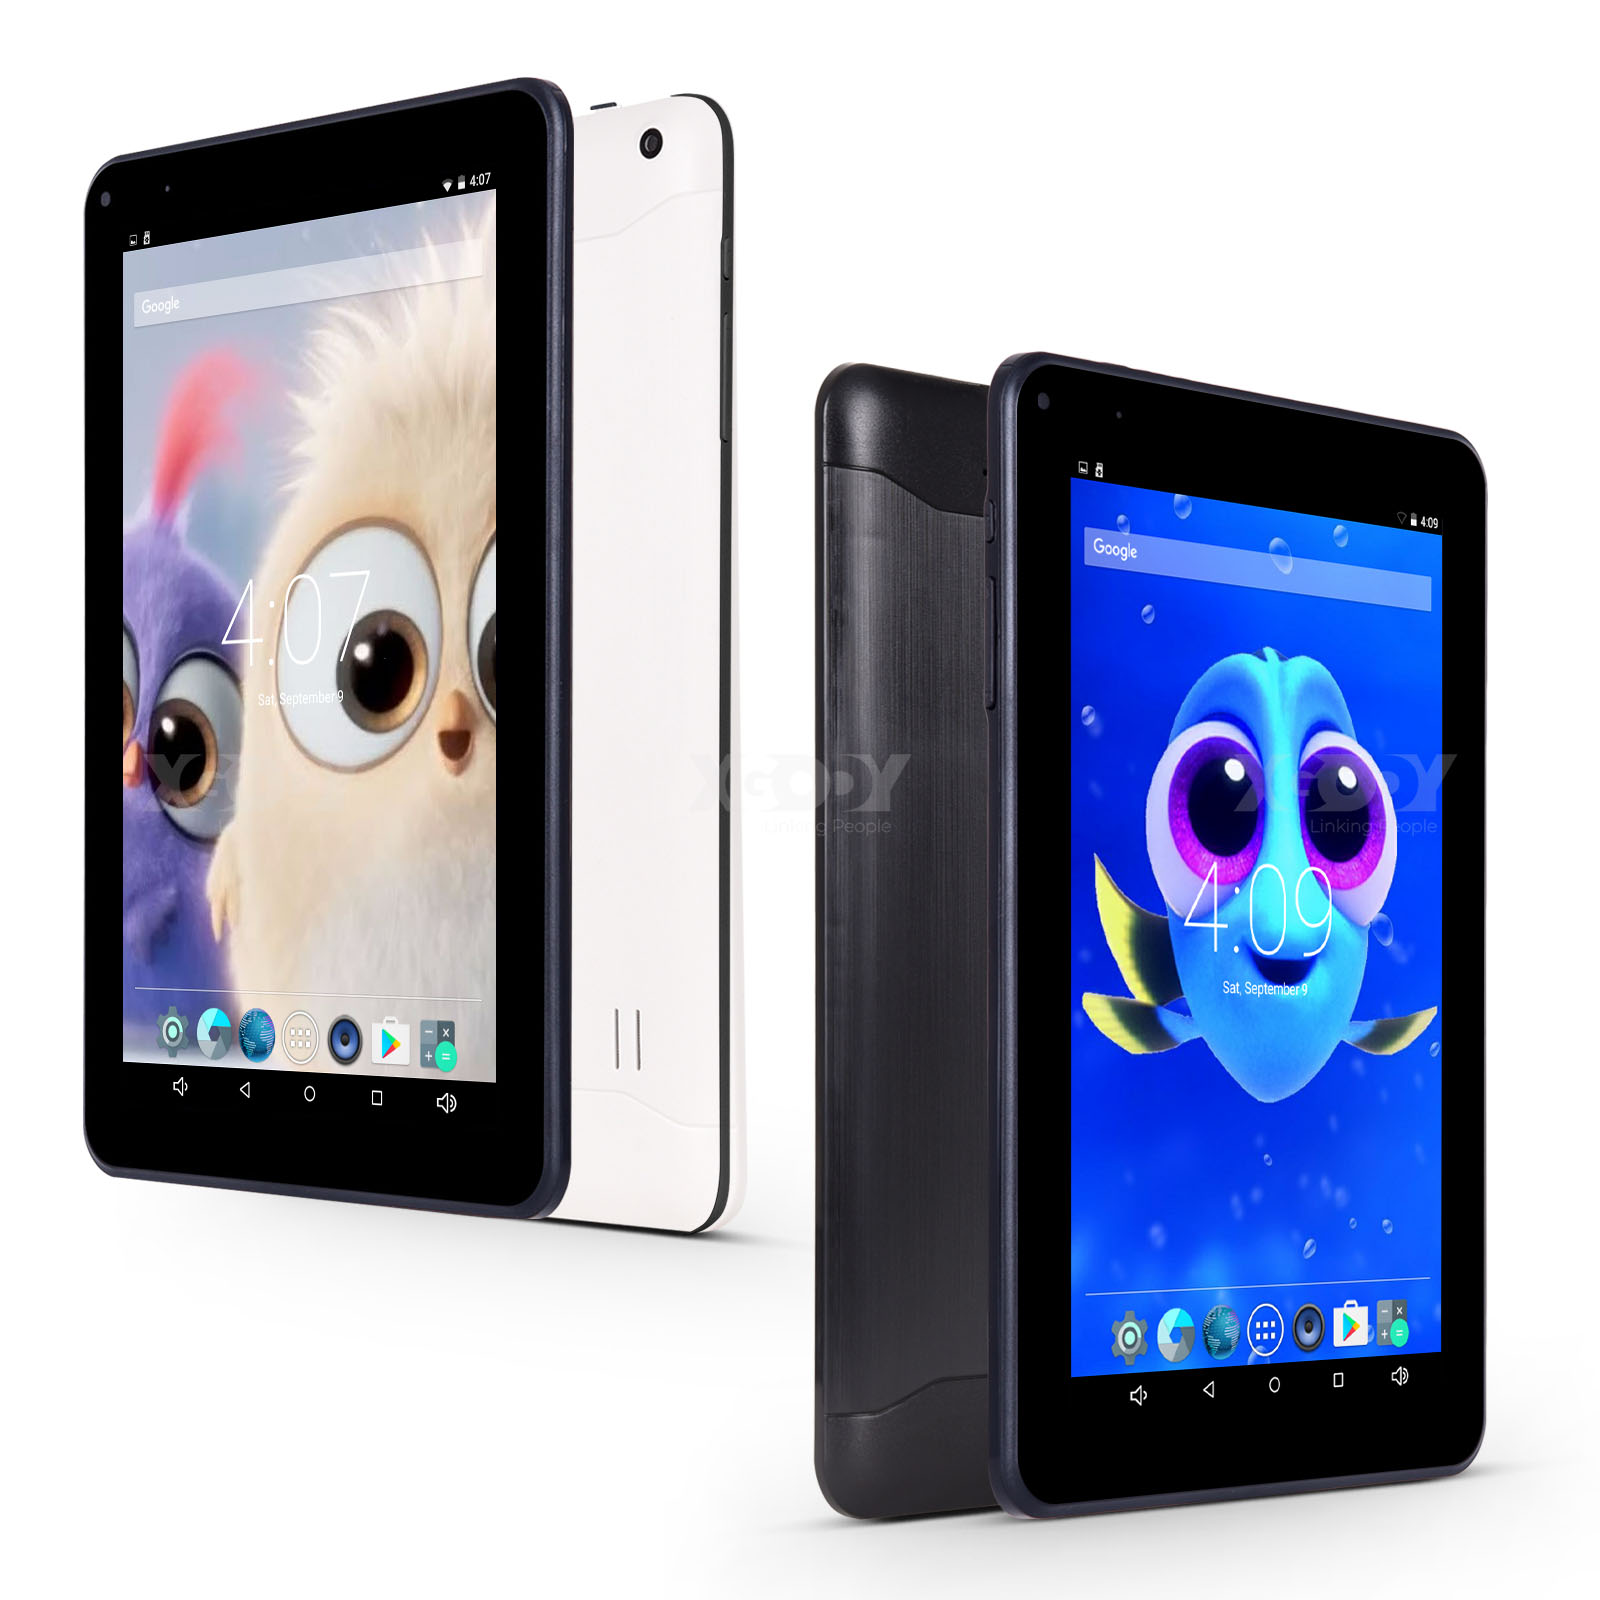 XGODY Android 6.0 Tablets Min order 20 units